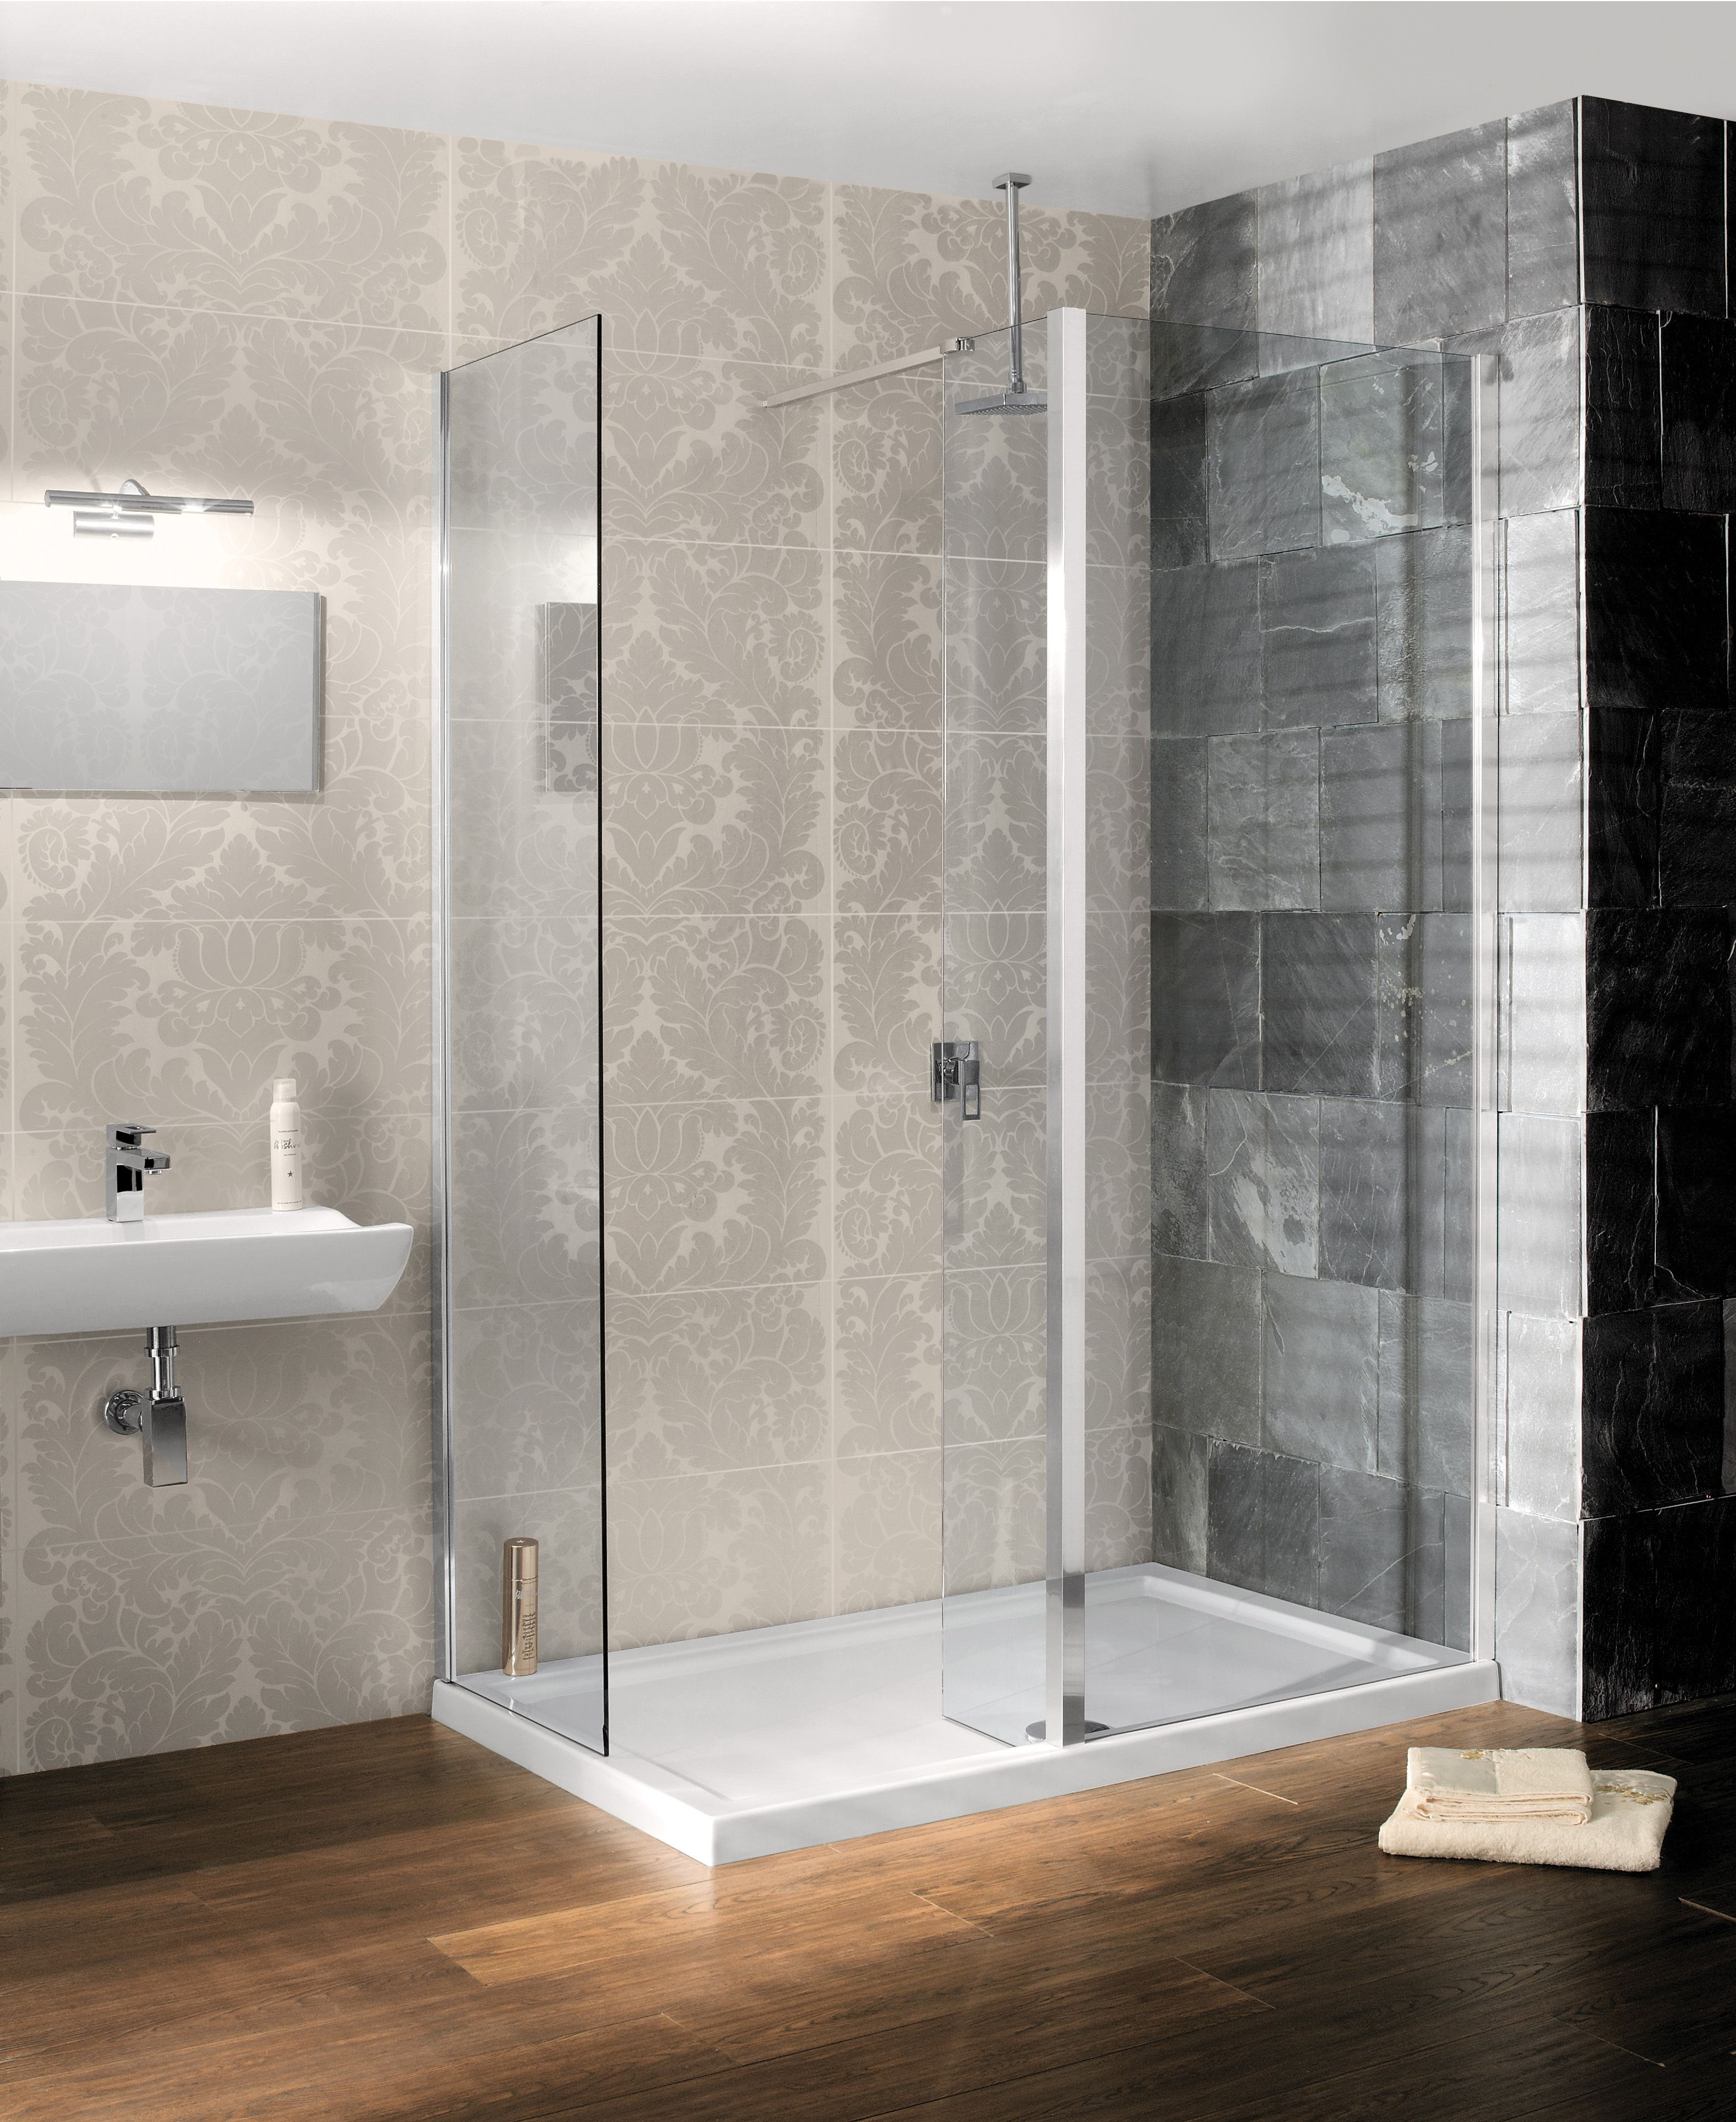 Design Semi-Frameless Walk In Bathroom Shower Enclosure from ...